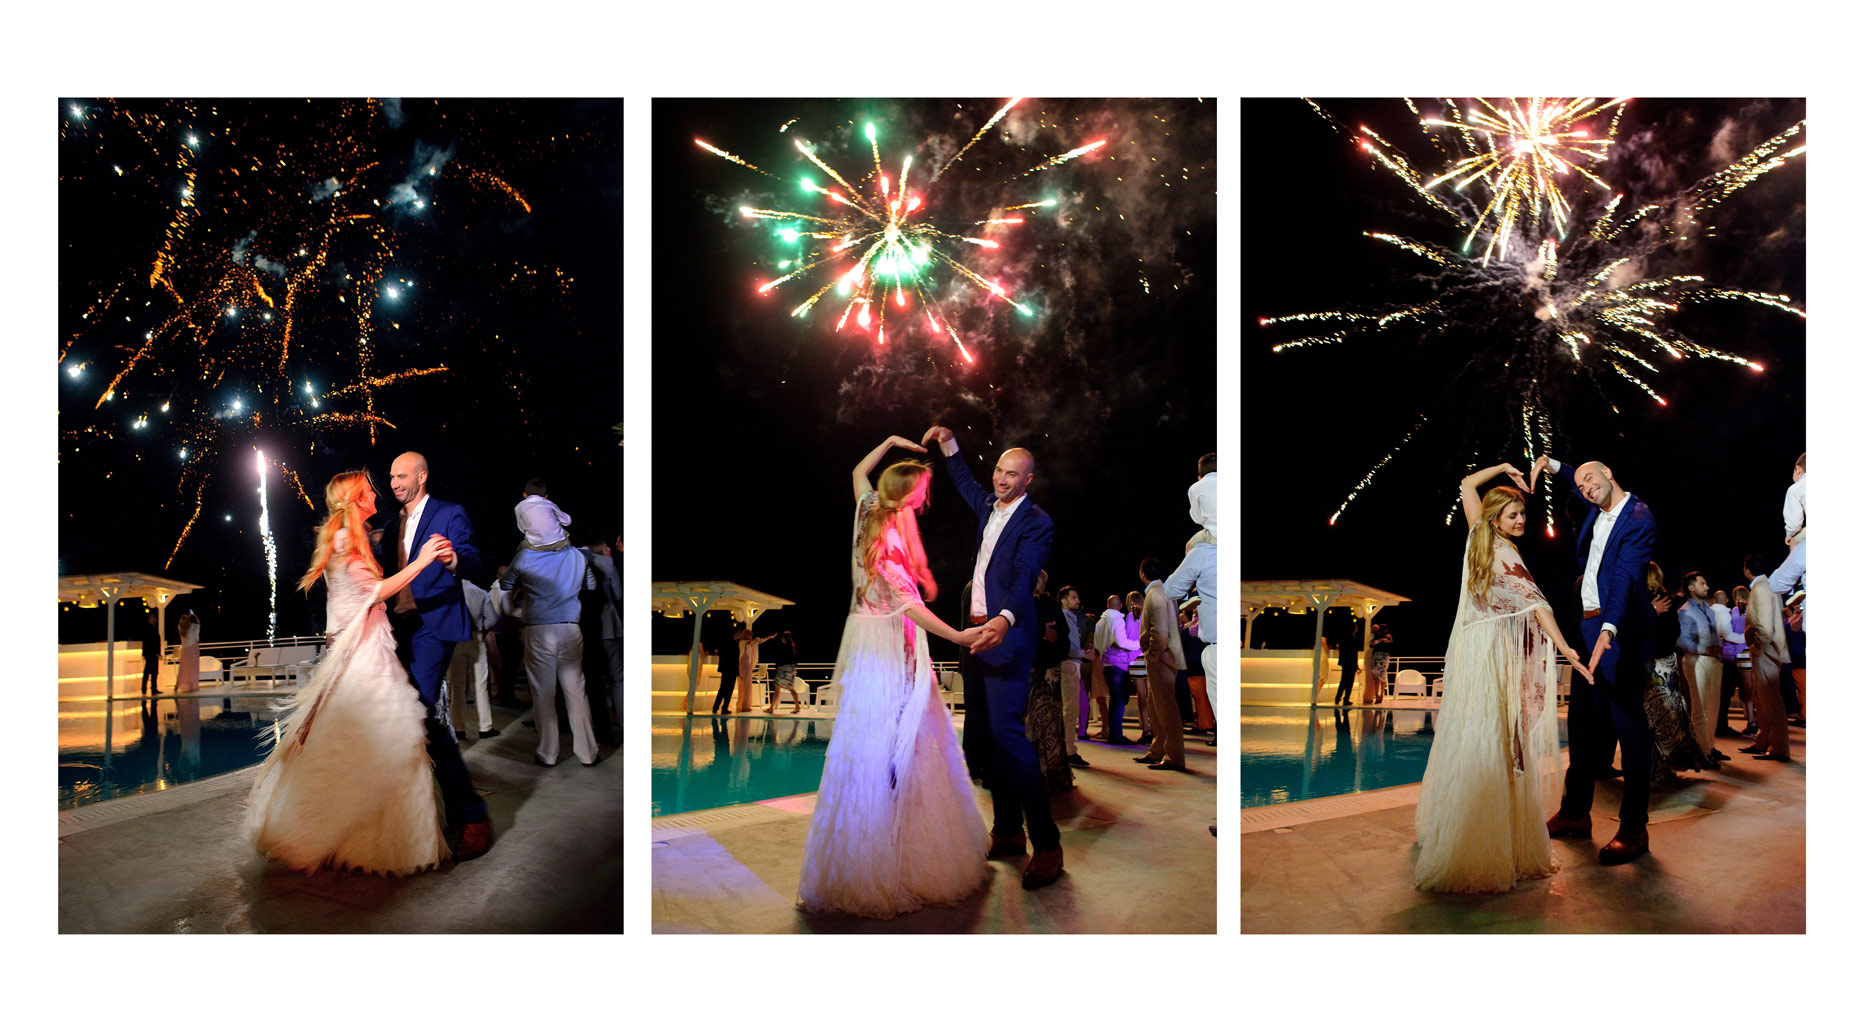 fireworks at wedding | wedding photography greece